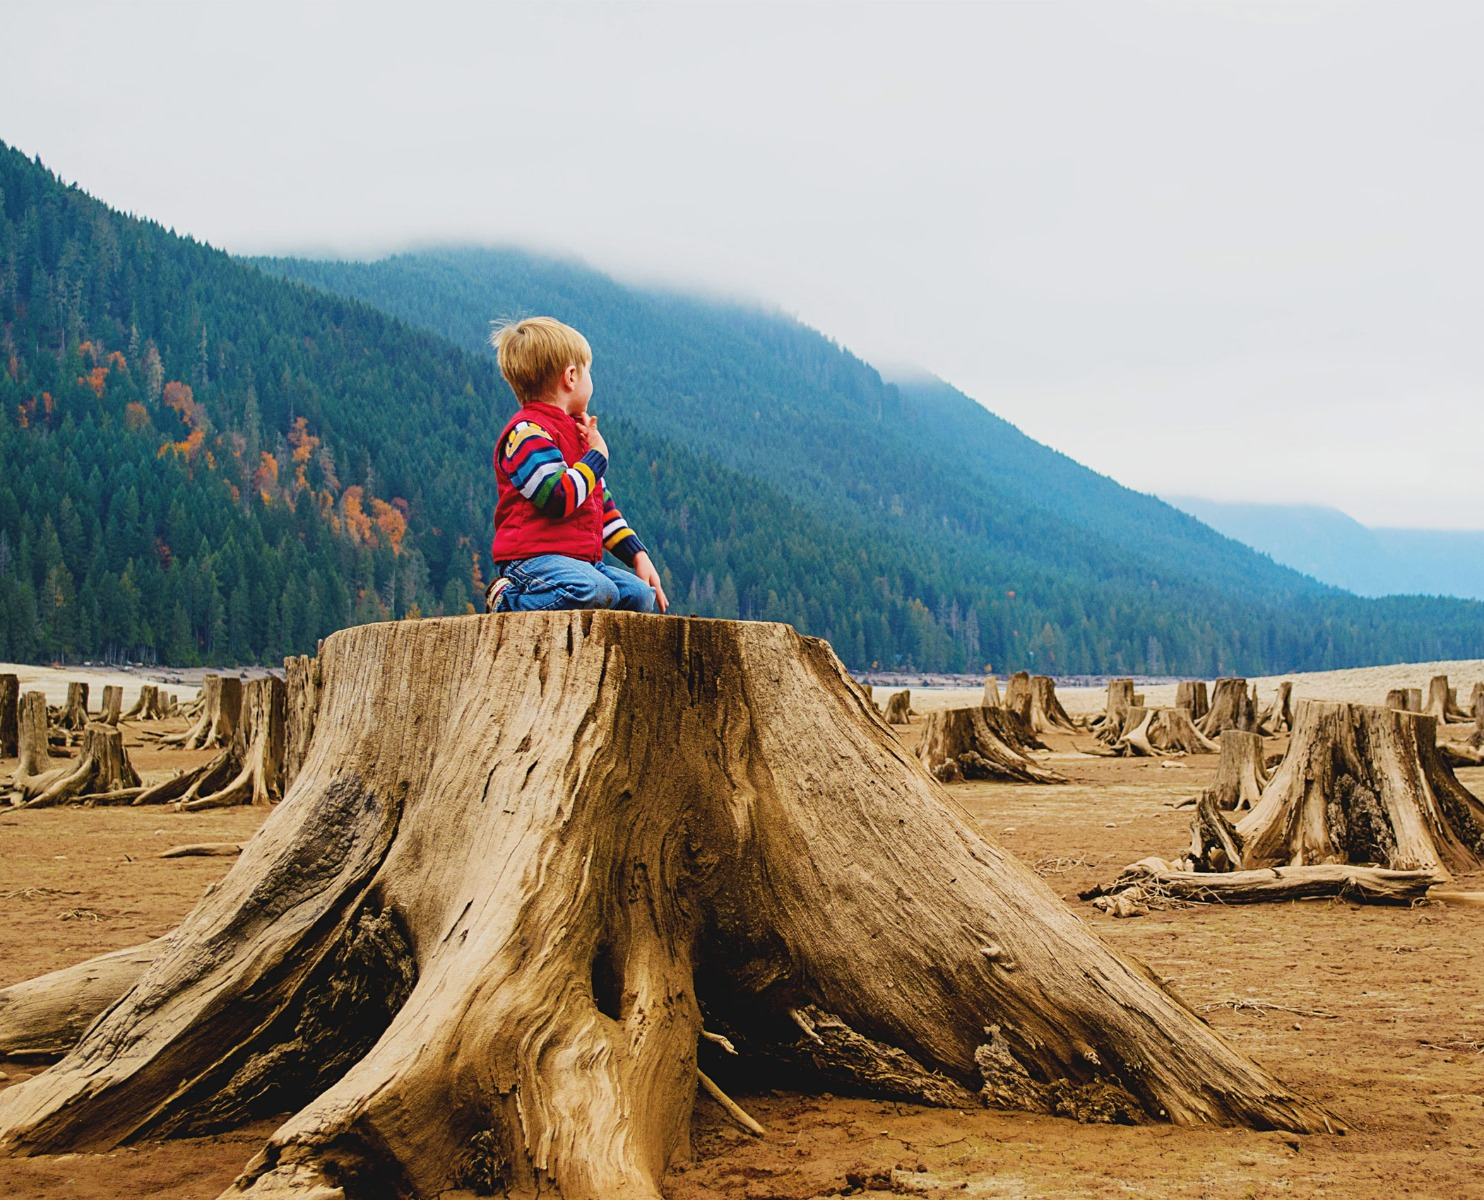 We all know by now that the food system created for us to thrive, is destroying the PLANET. We made it linear while nature's design is circular. Always. That is natures nature. Food production is the biggest contributor to the global climate crisis and the time to act is now. We live in a PARADOX where kids have more power than adults to shift the climate crisis agenda to a global top priority. Yes, the climate crisis is a reality. Yet, we only have one life to live and we want to enjoy it, guilt-free!